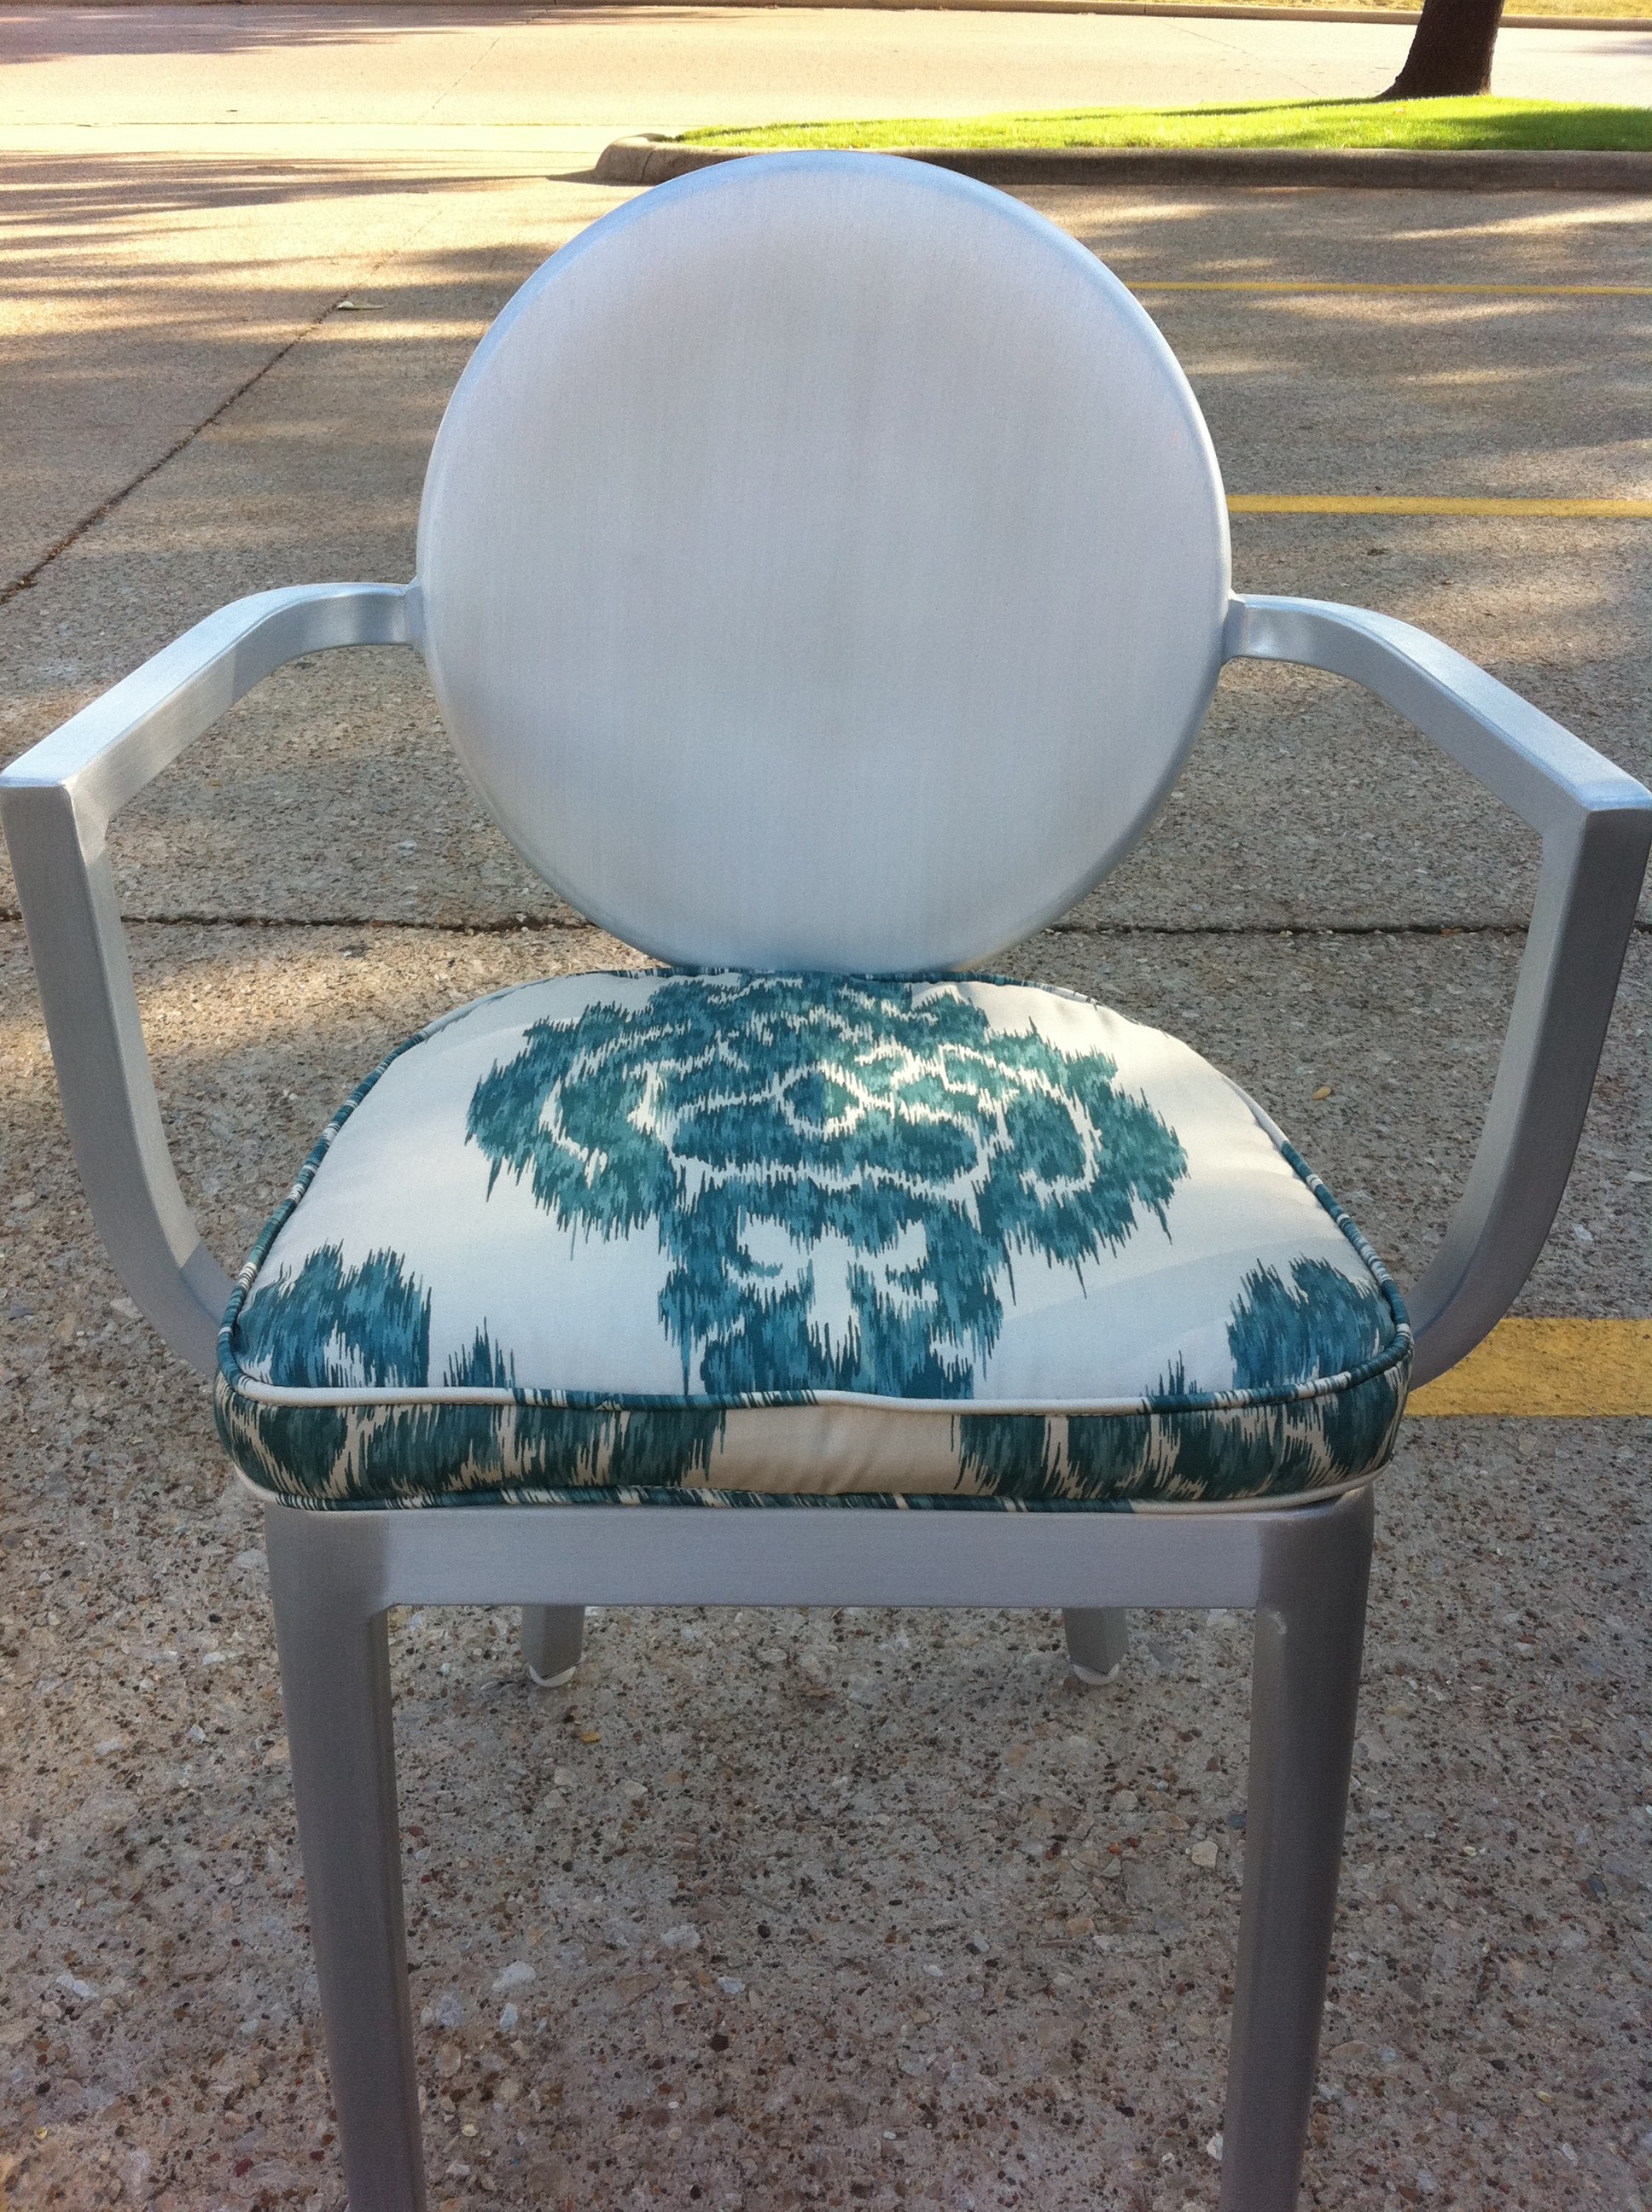 cushions for ghost chairs large round patio table and chair cushion